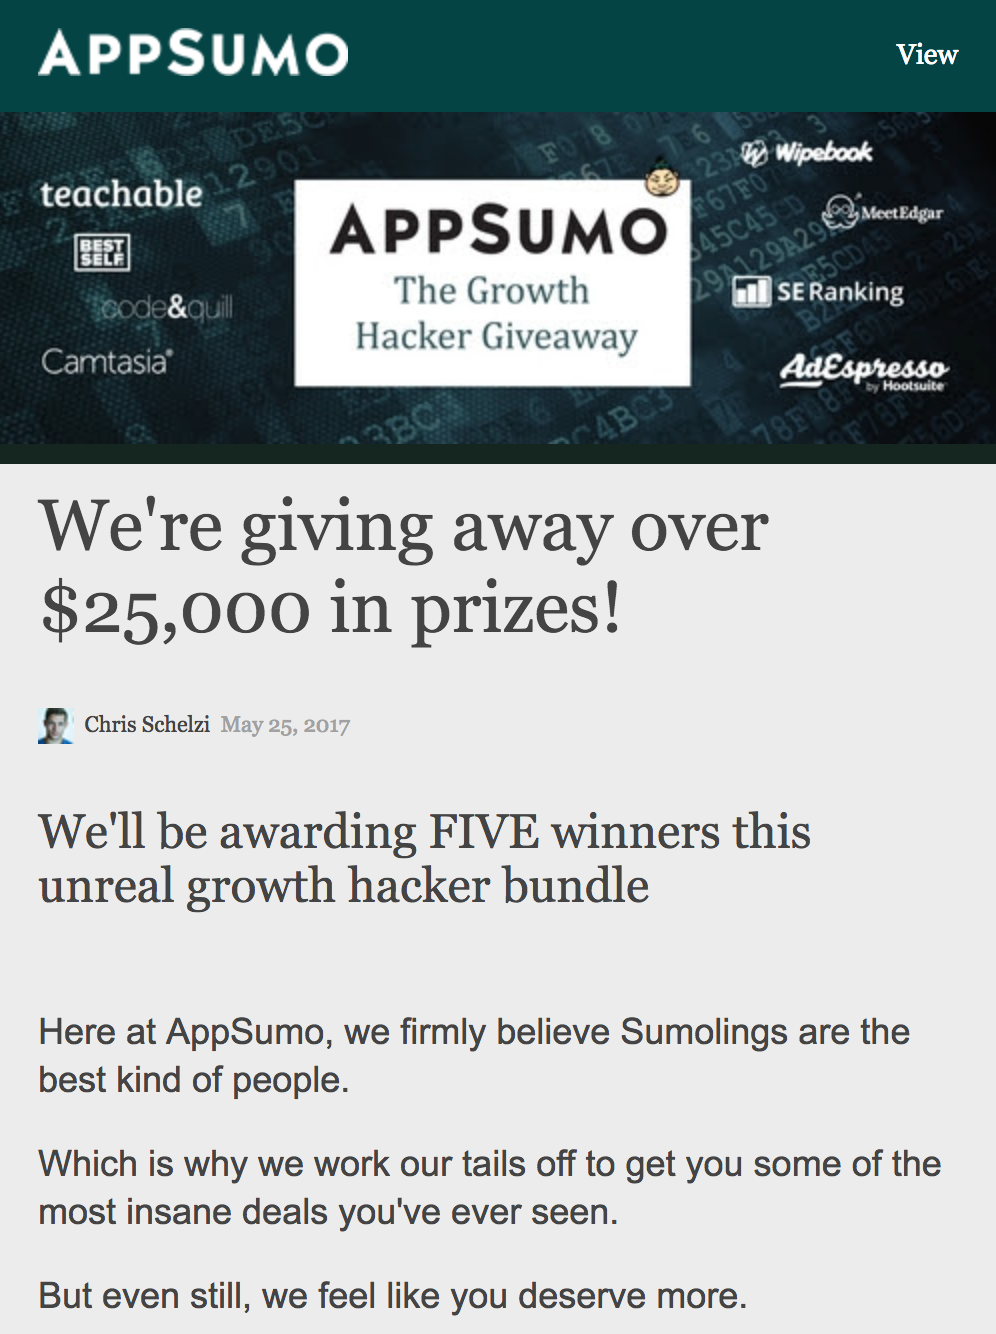 Screenshot showing copy for an appsumo giveaway